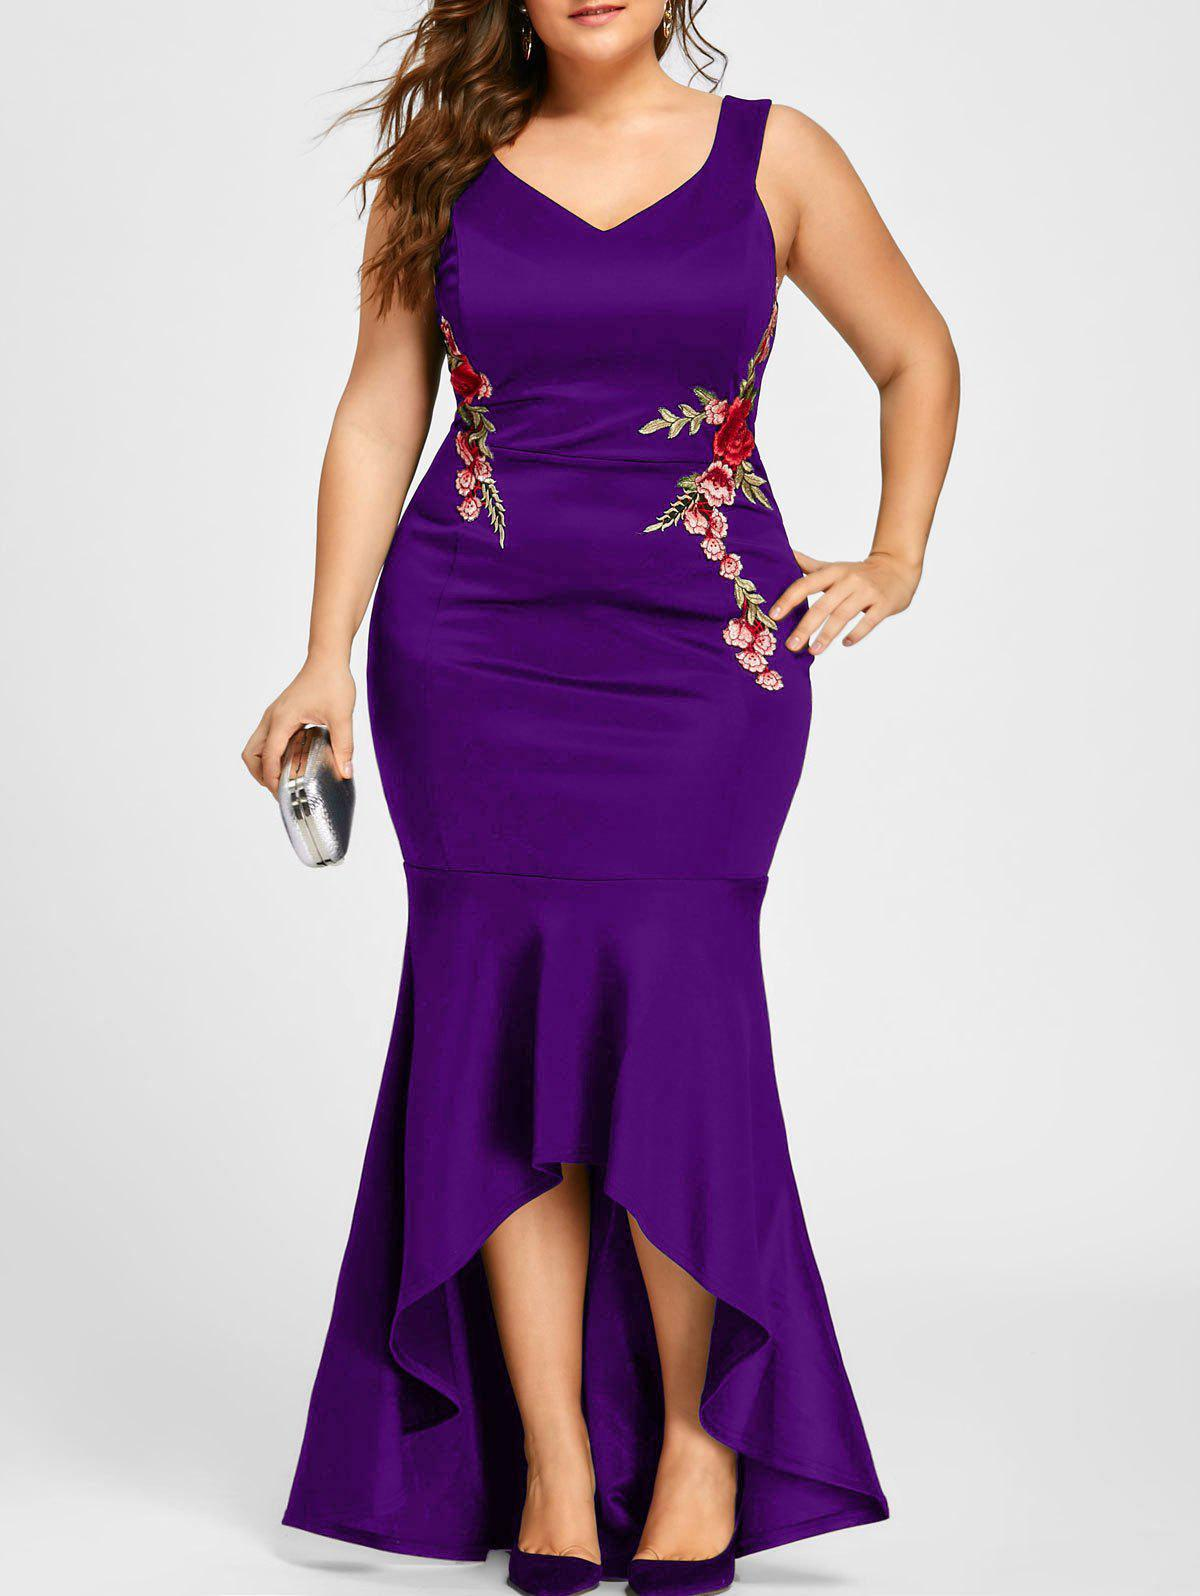 Plus Size V Neck Sleeveless Mermaid Dress - PURPLE XL